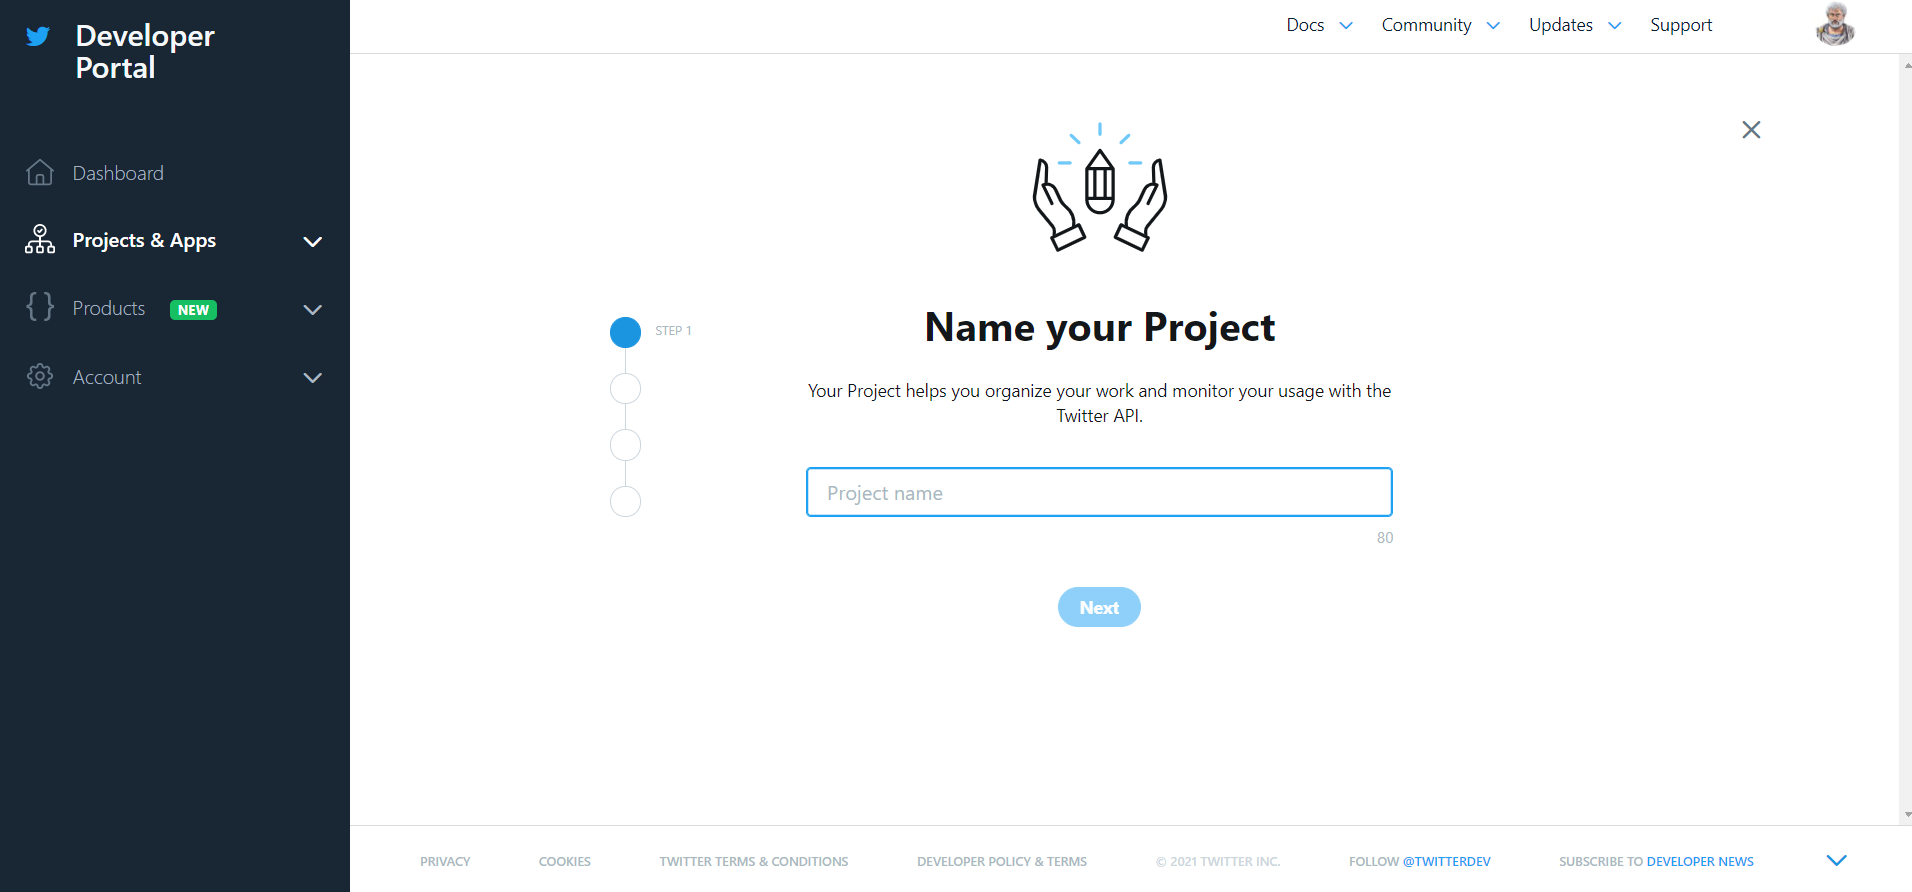 Name of the project